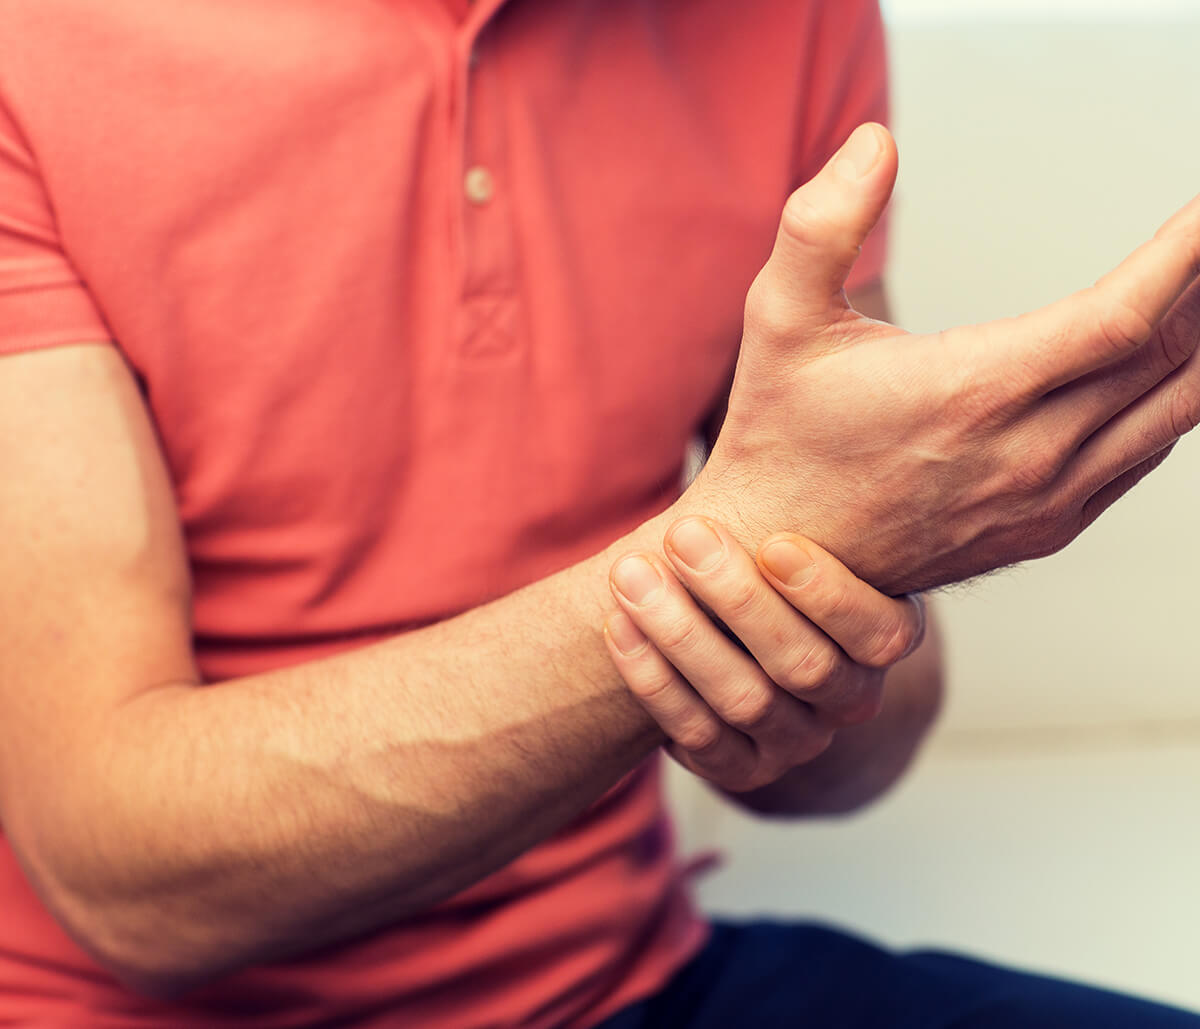 Encinitas, CA specialist gets to know your gout symptoms for relief, effective treatment options